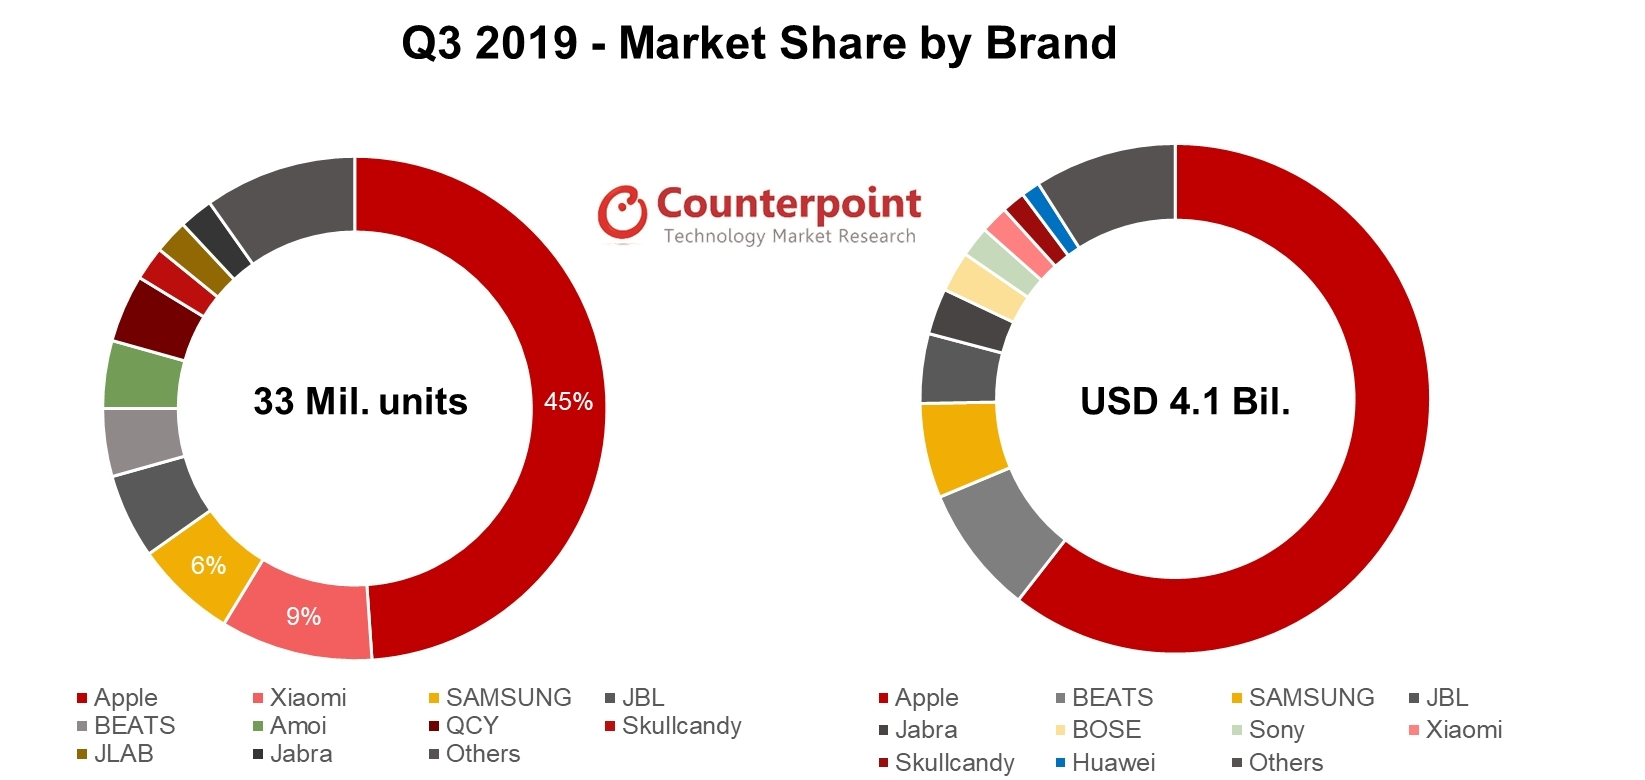 After A Strong Performance In Q3 2019, Would Focus On